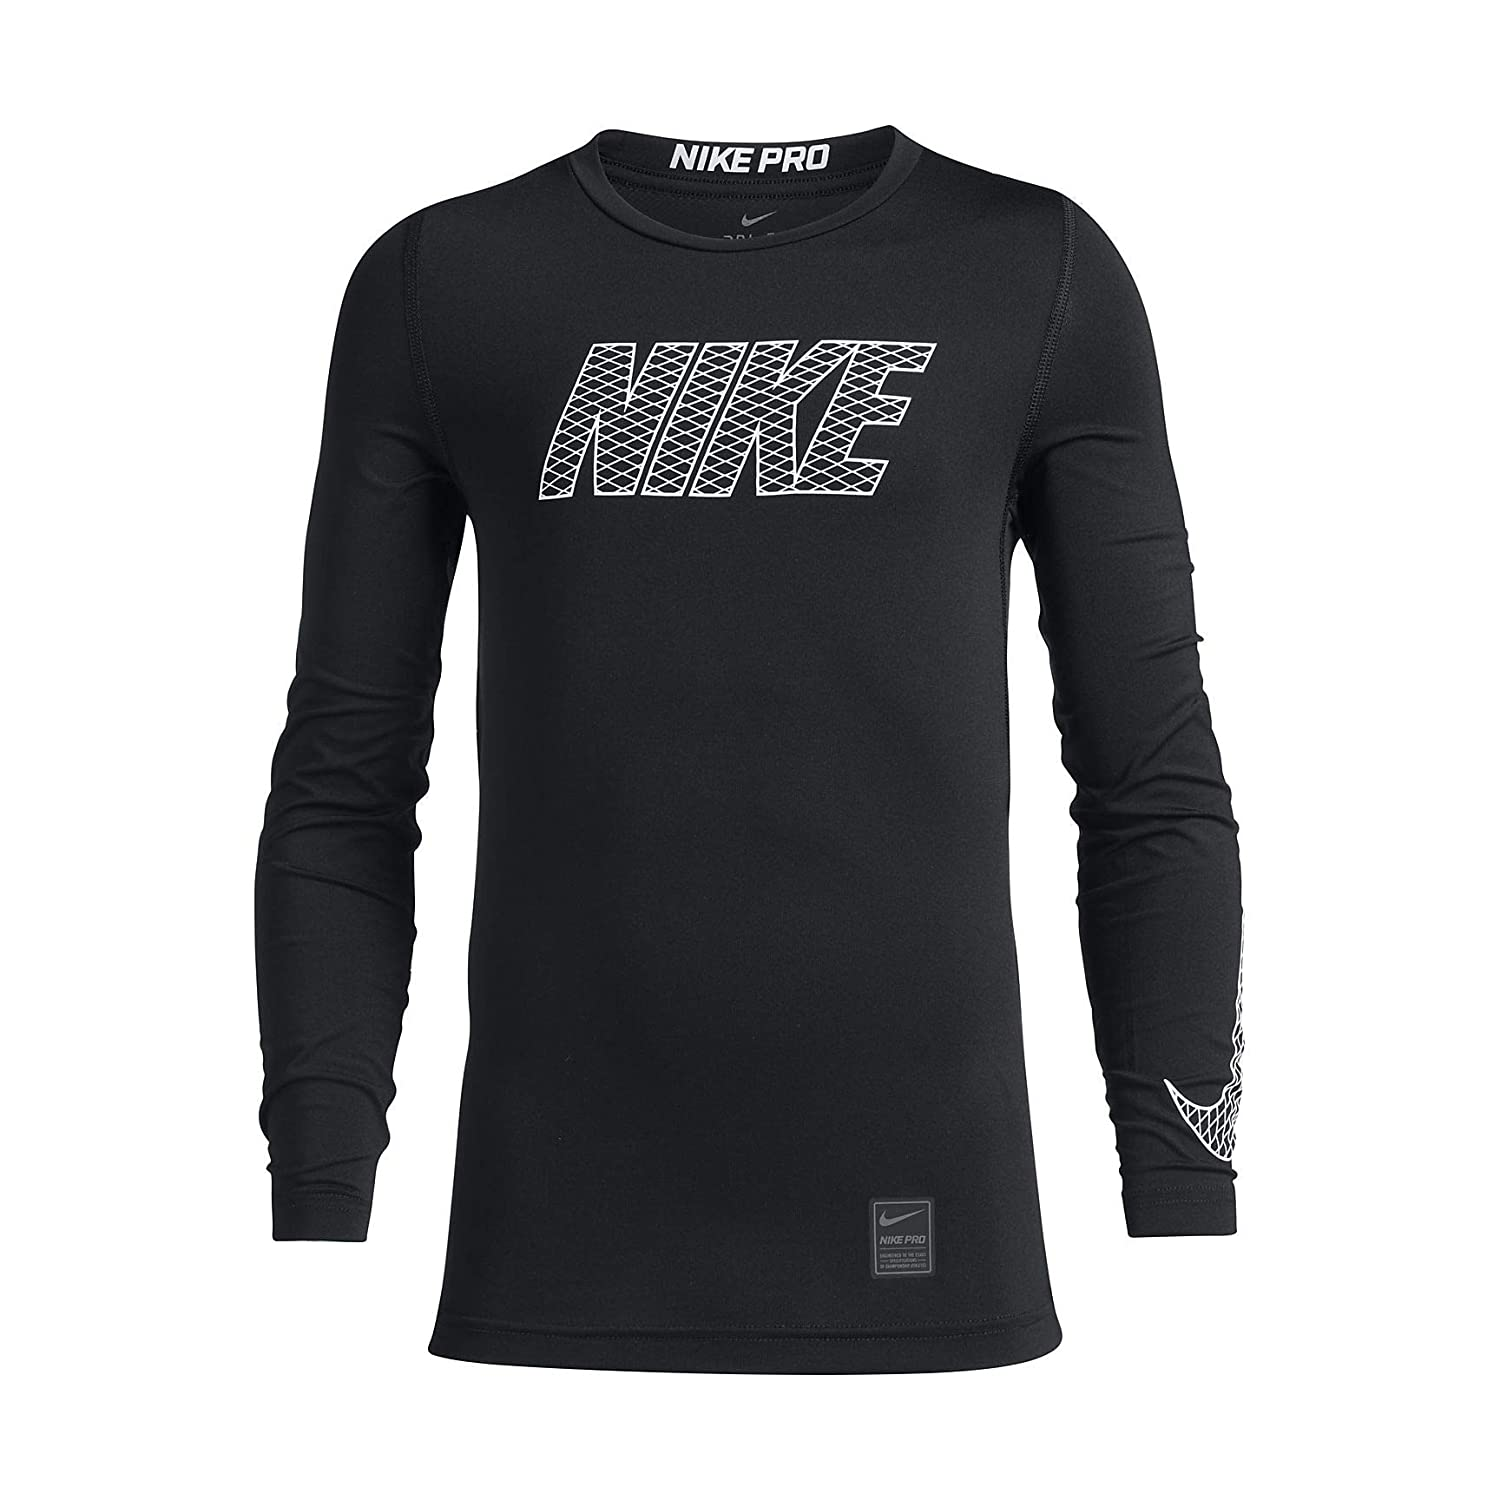 Nike Pro Top Crew LS Compression Shirt, Children's, Pro Top Crew LS Children's 858232-010